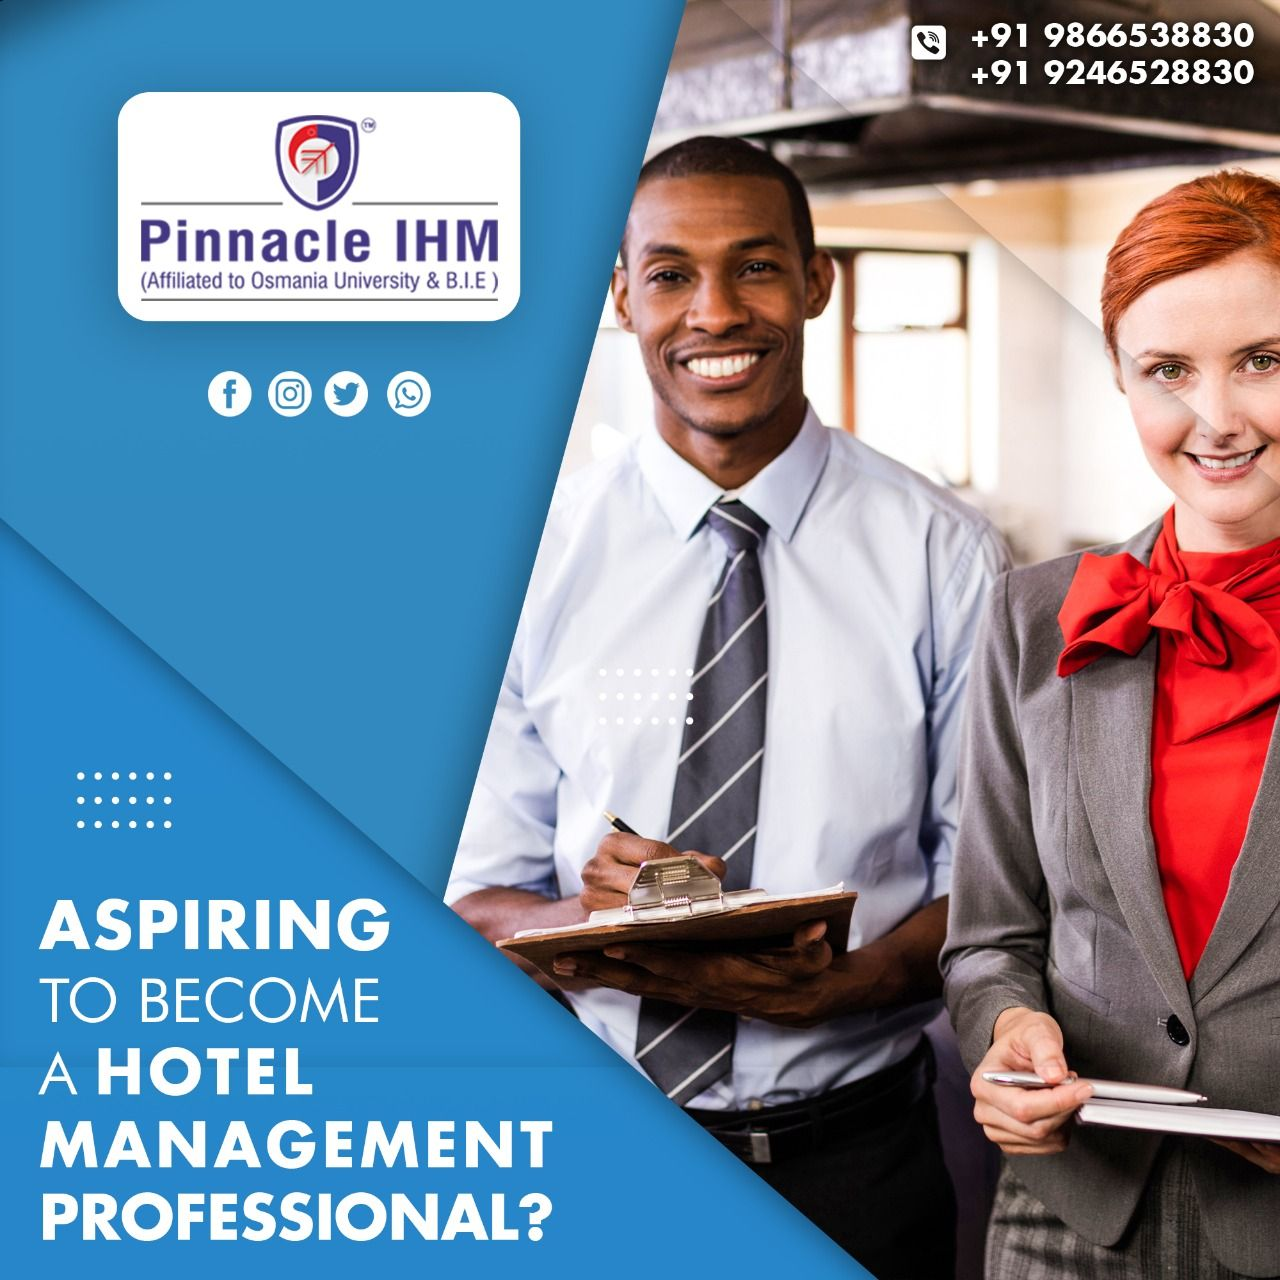 Enrol in Pinnacle IHM hotel management course and see